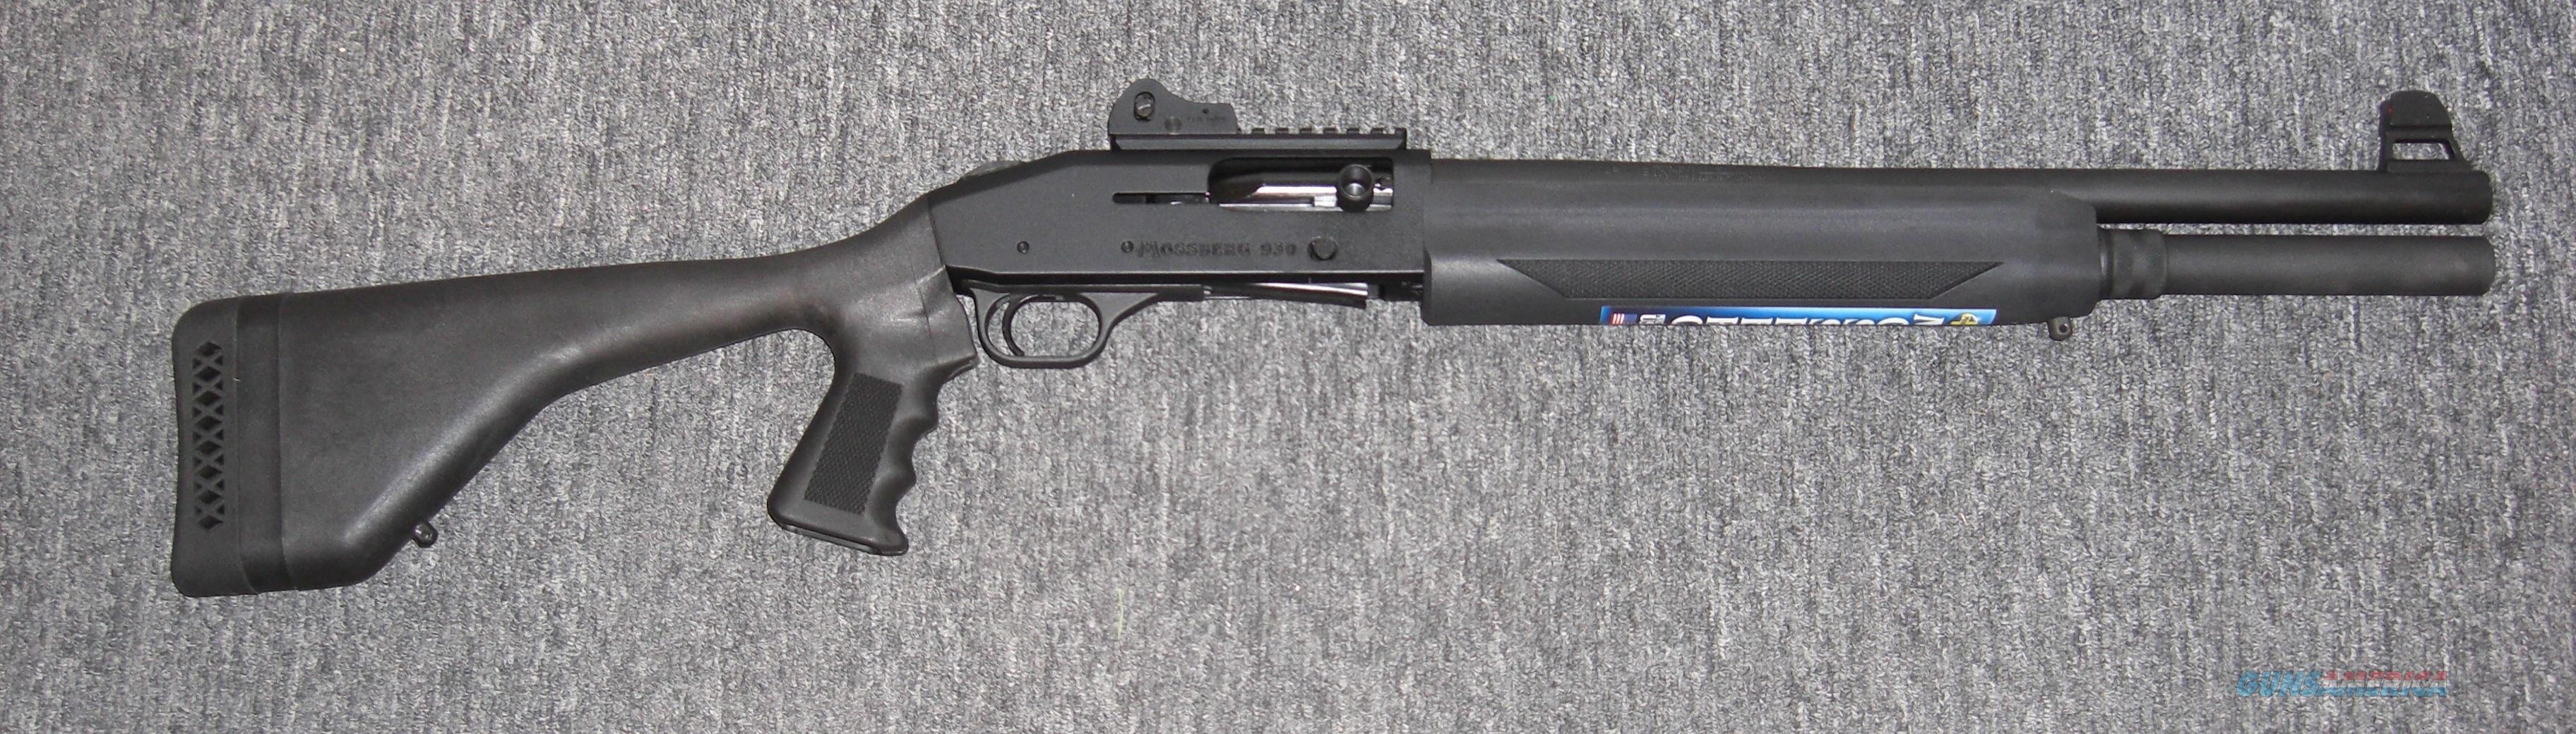 930 SPX  w/optics rail, ghost ring rear sight  (85370)  Guns > Shotguns > Mossberg Shotguns > Autoloaders